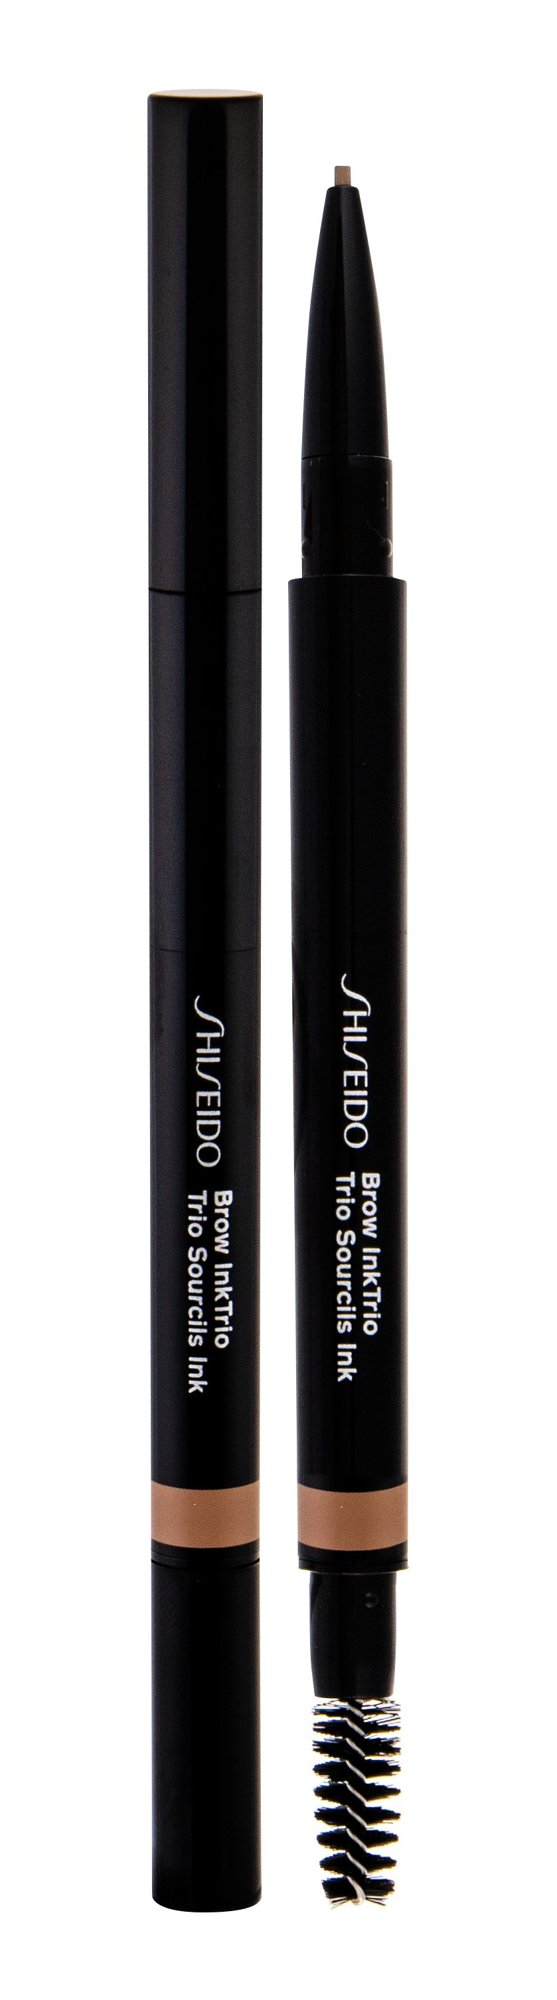 Shiseido Brow InkTrio Eyebrow Pencil 0,31ml 01 Blonde